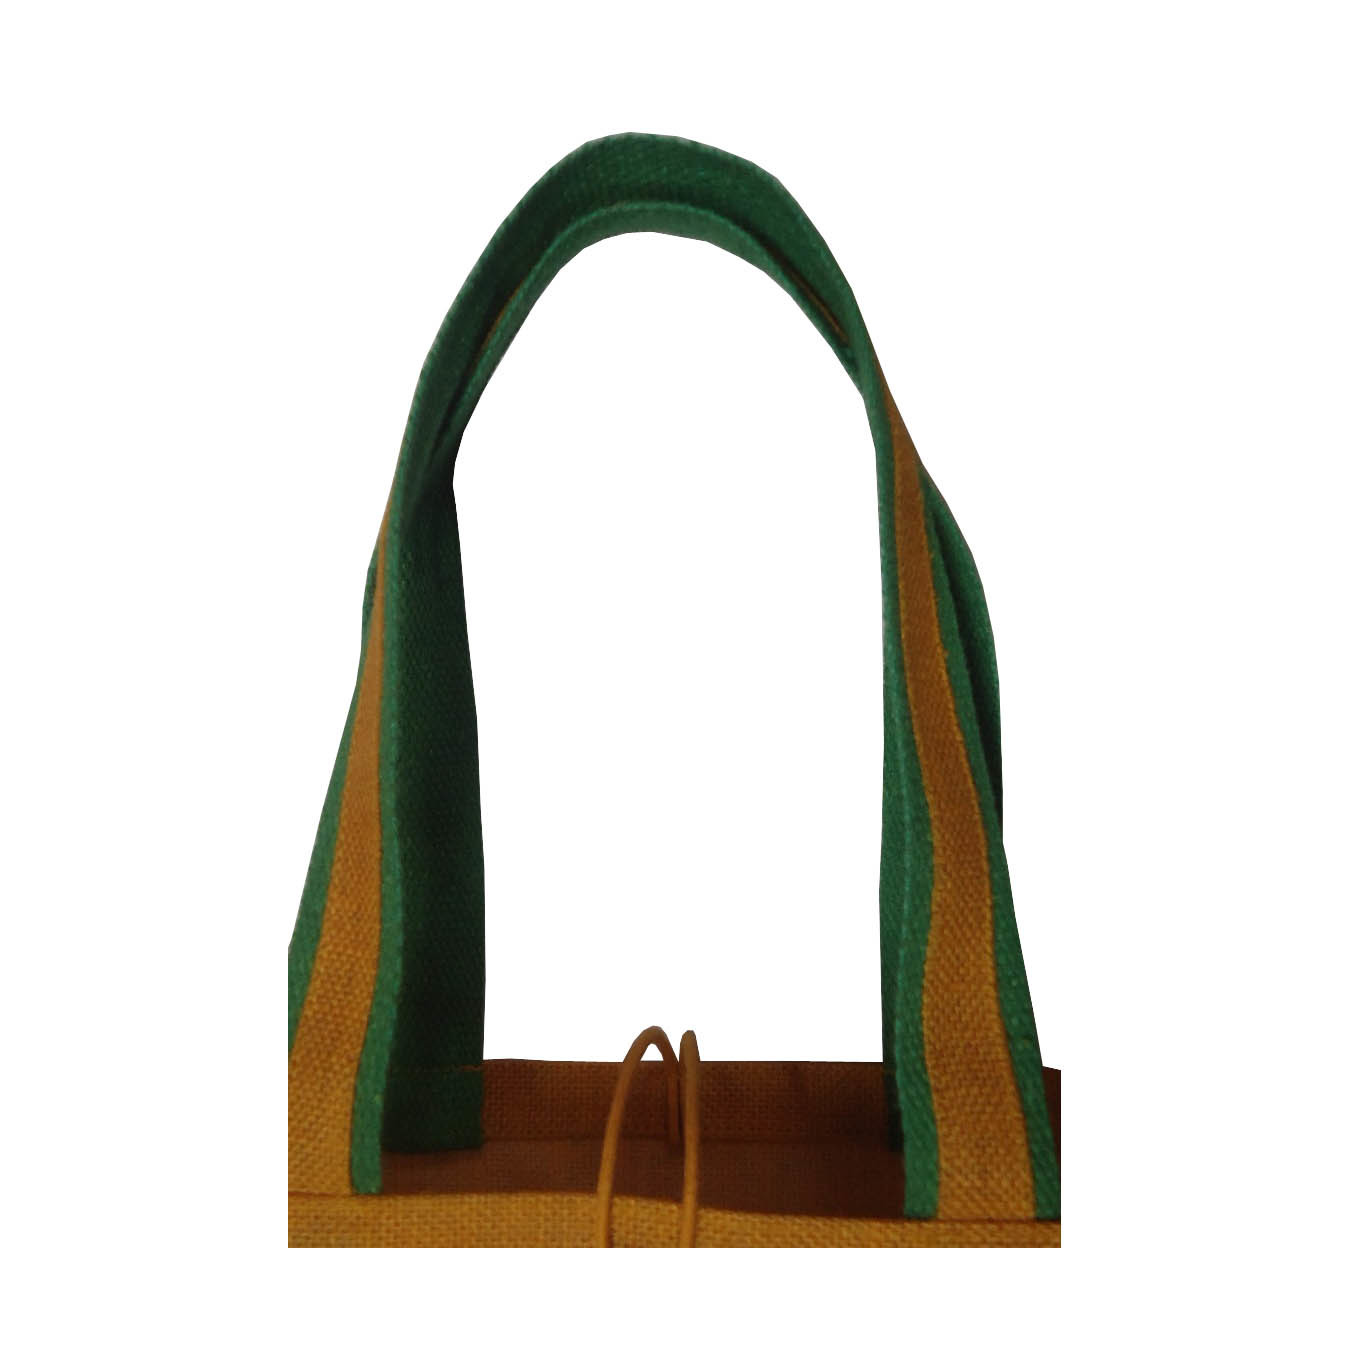 PP Laminated Jute Bag With Jute Trimmed Cotton Web Handle